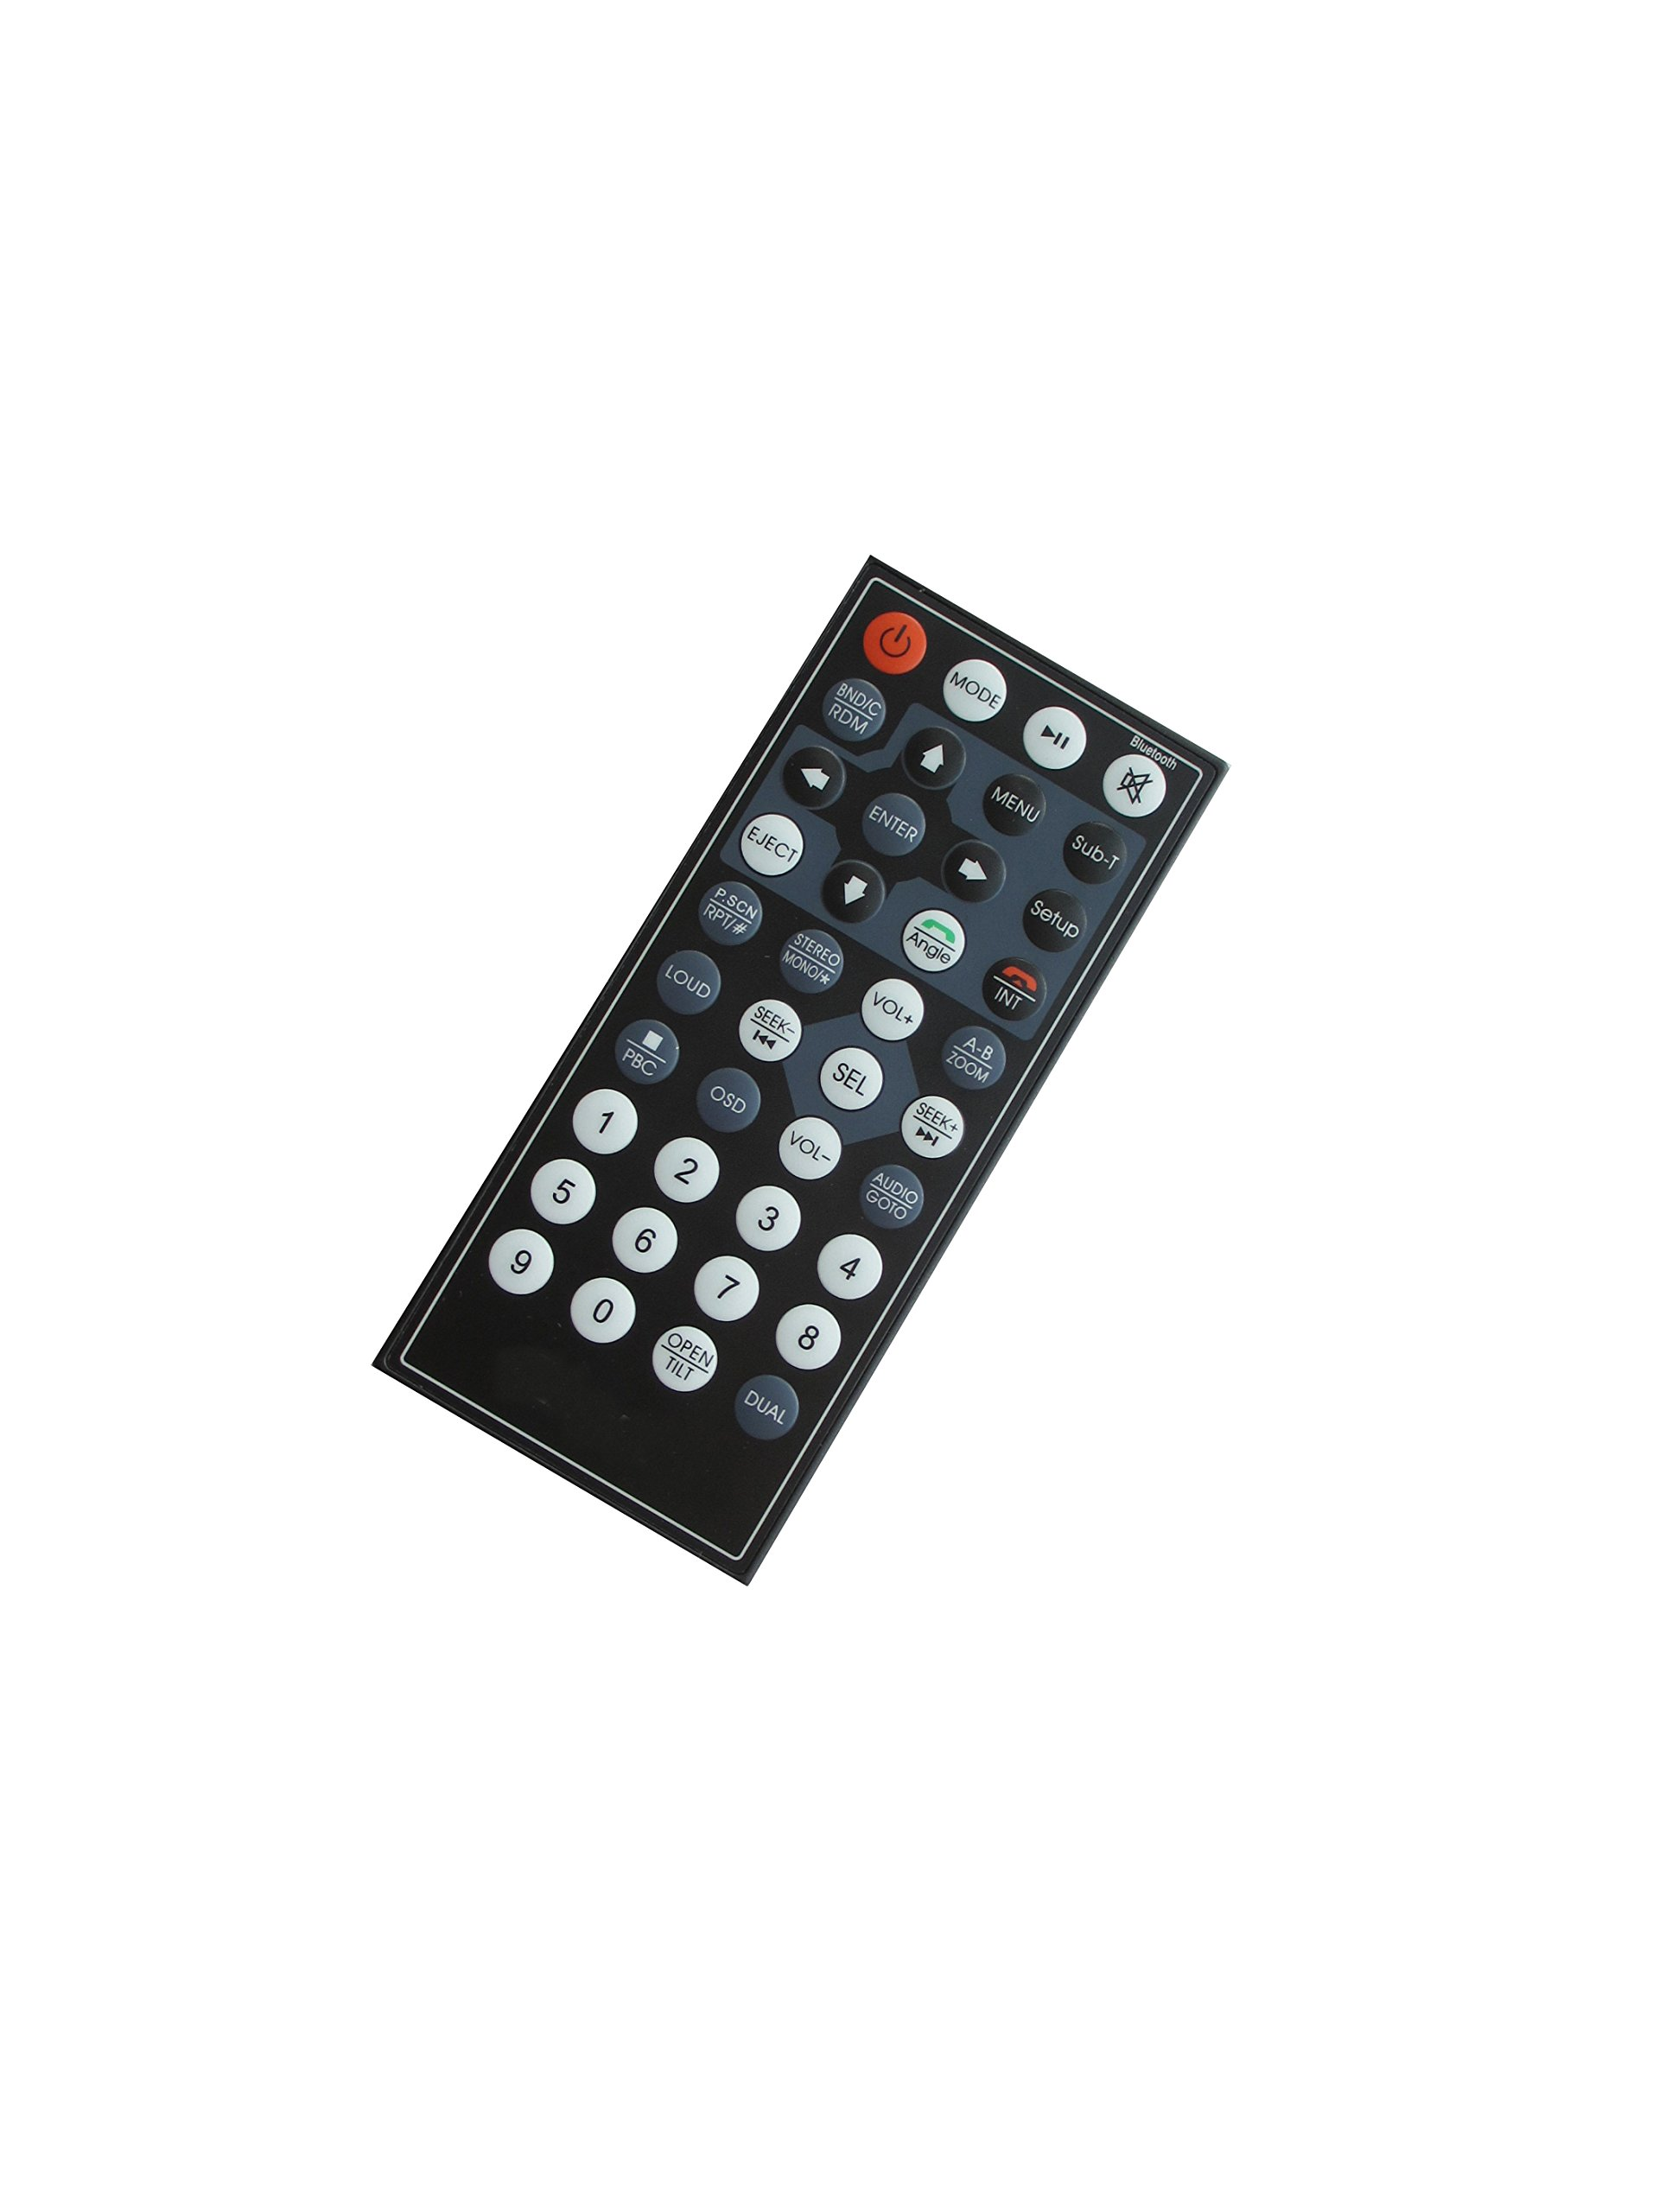 General Remote Control For Visteon FDR-340 FDR-780T FDR-654 DVD CD USB SD AM FM MP3 Player Bluetooth Car Stereo Receiver by HCDZ (Image #1)